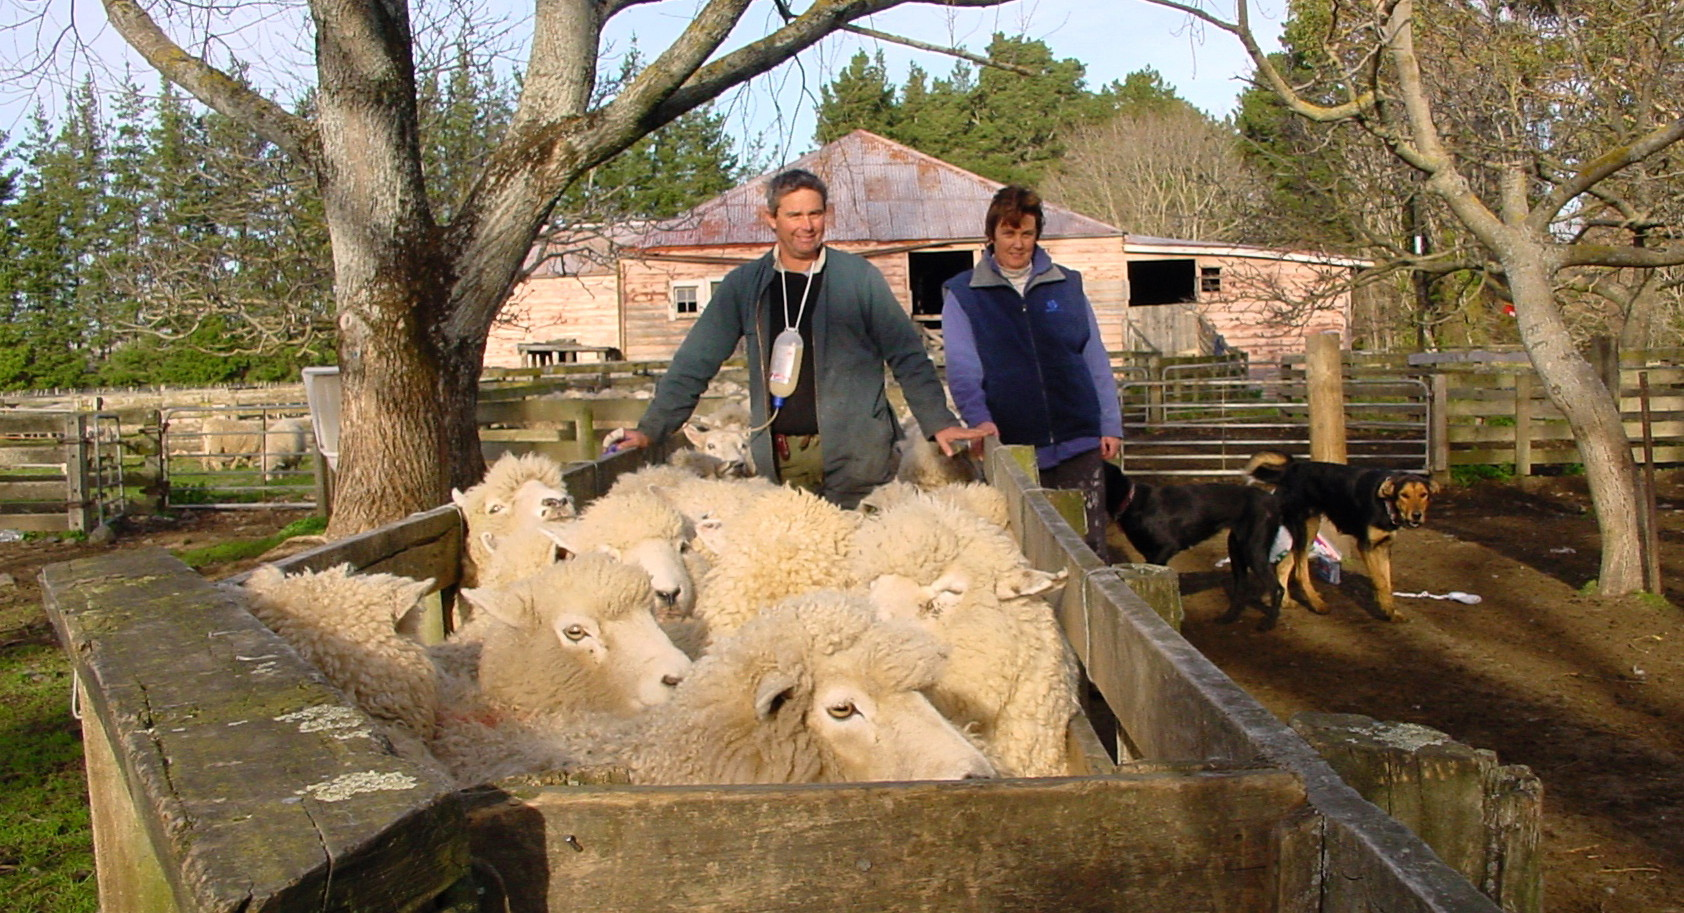 Gary and Kirsty working in sheep yards